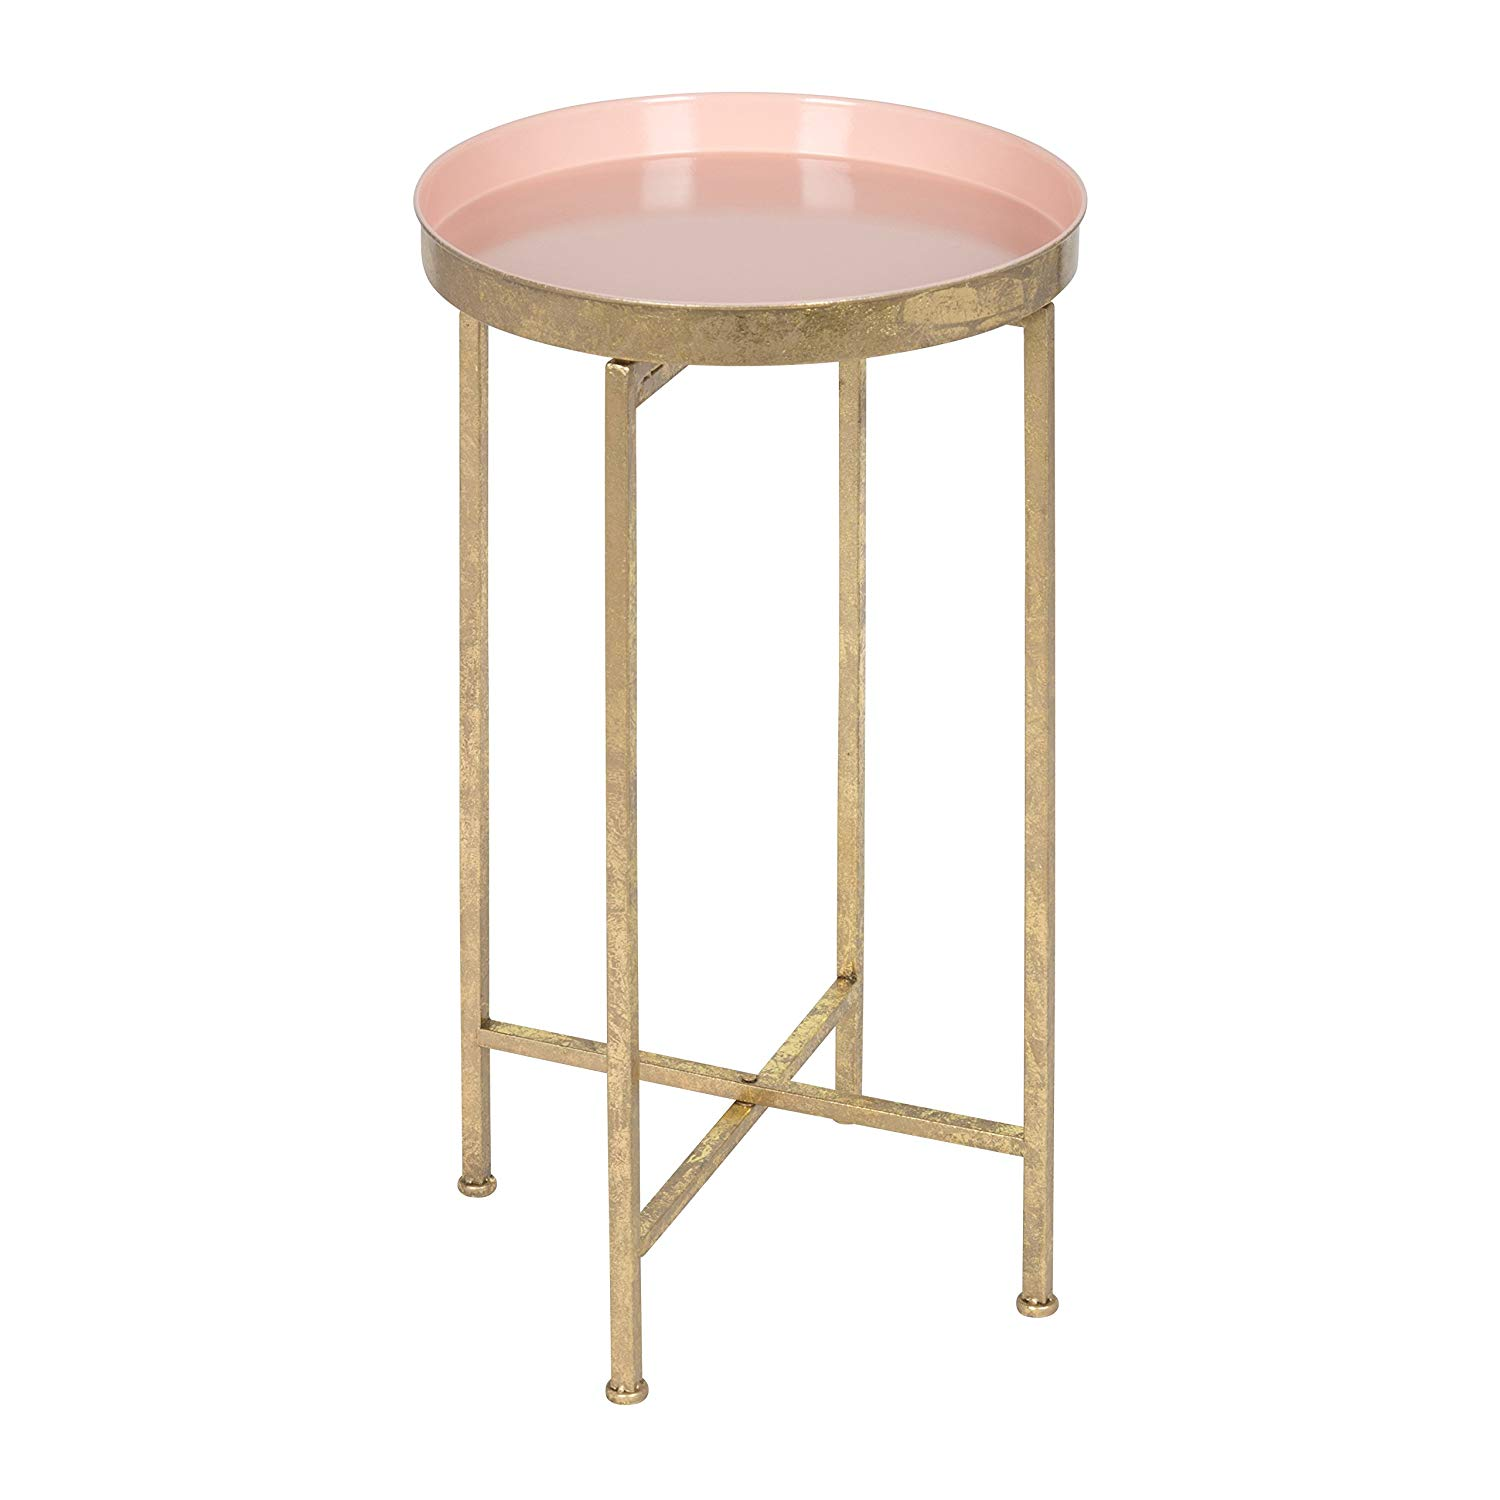 kate and laurel celia round metal foldable tray accent table pink gold home kitchen wrought iron patio pier dinnerware navy blue coffee canvas umbrella low drum throne dinner